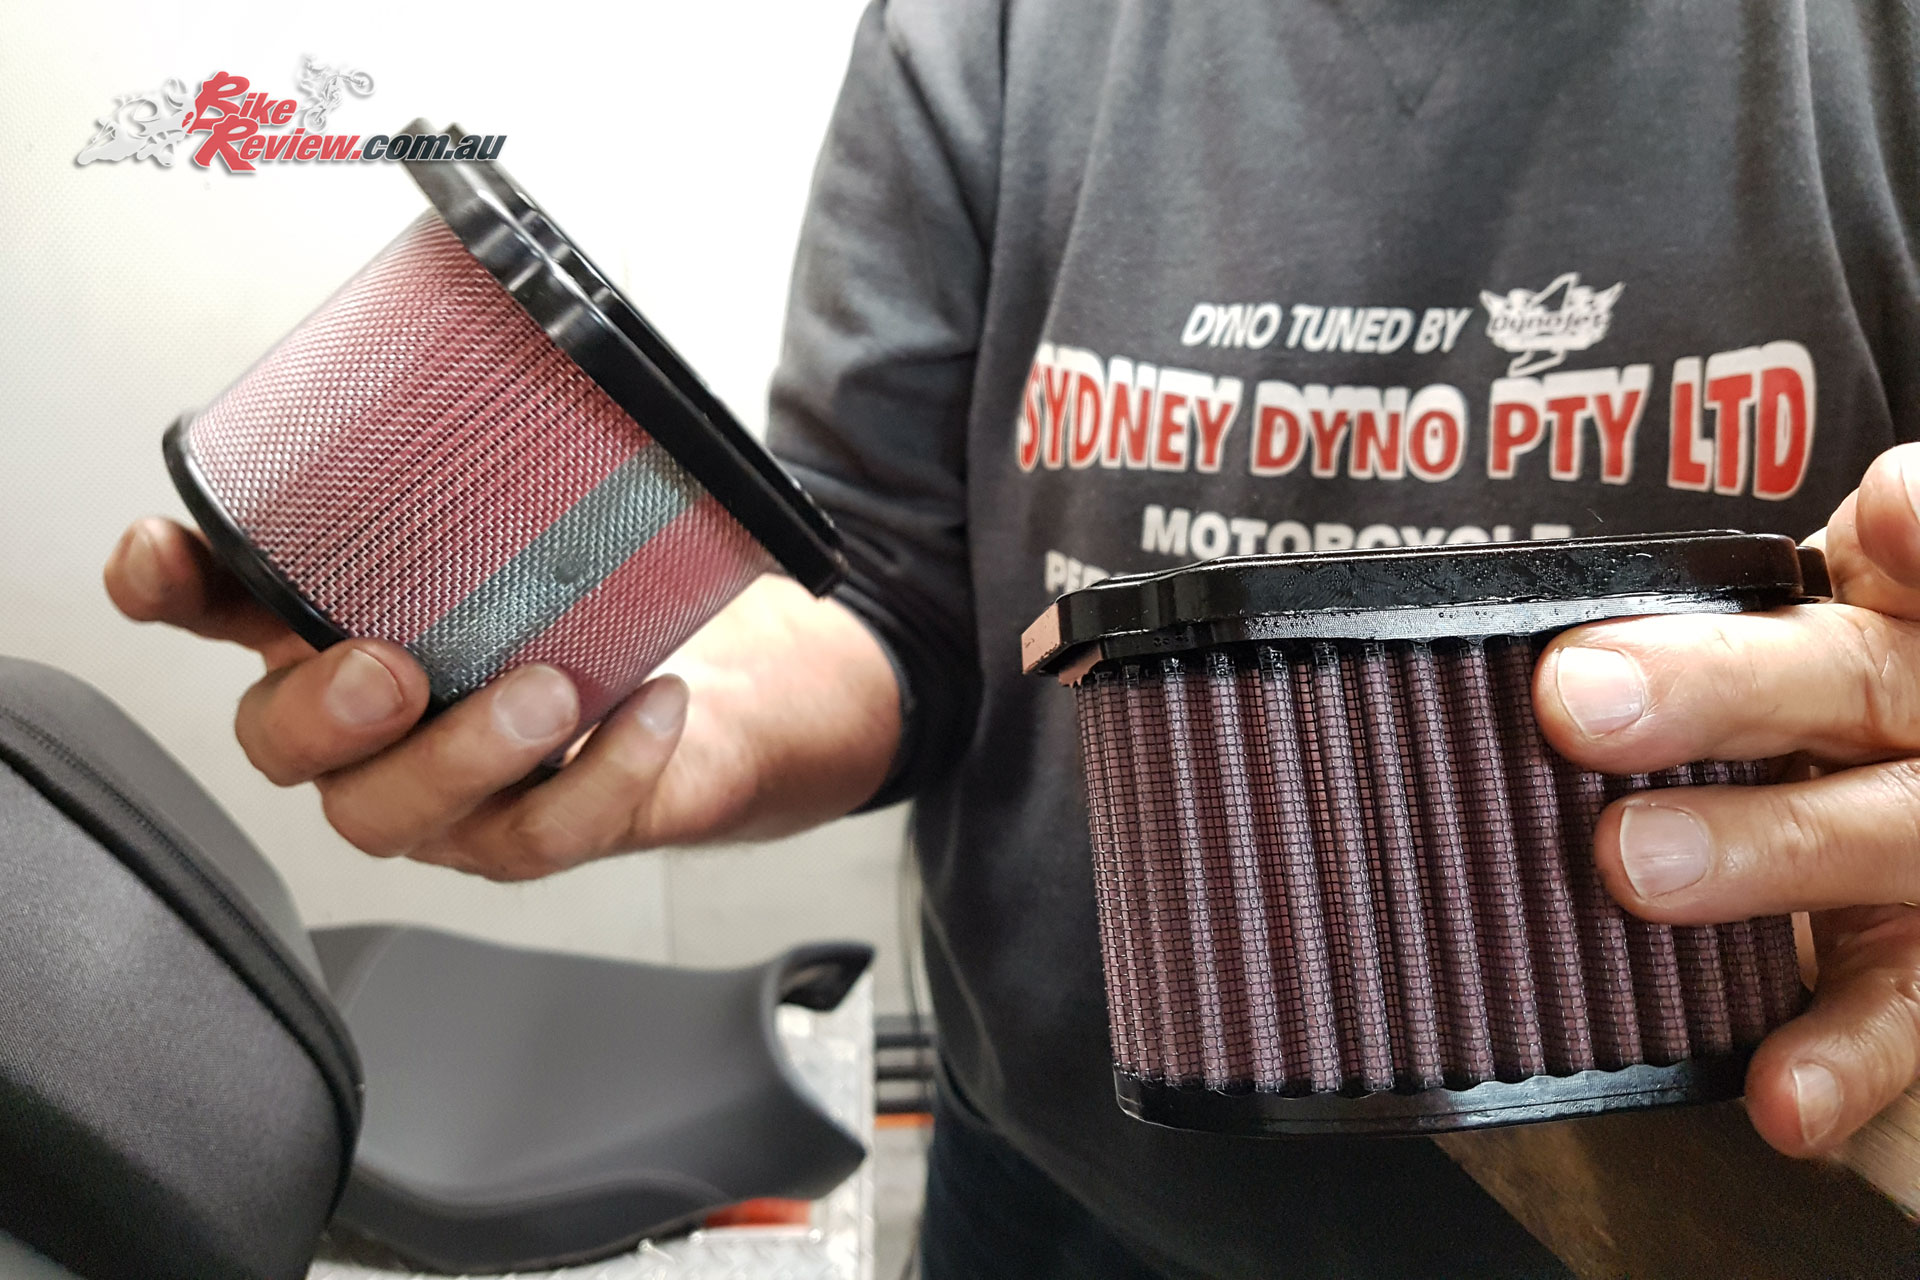 Old (standard filter) versus the new DNA High Performance airfilter